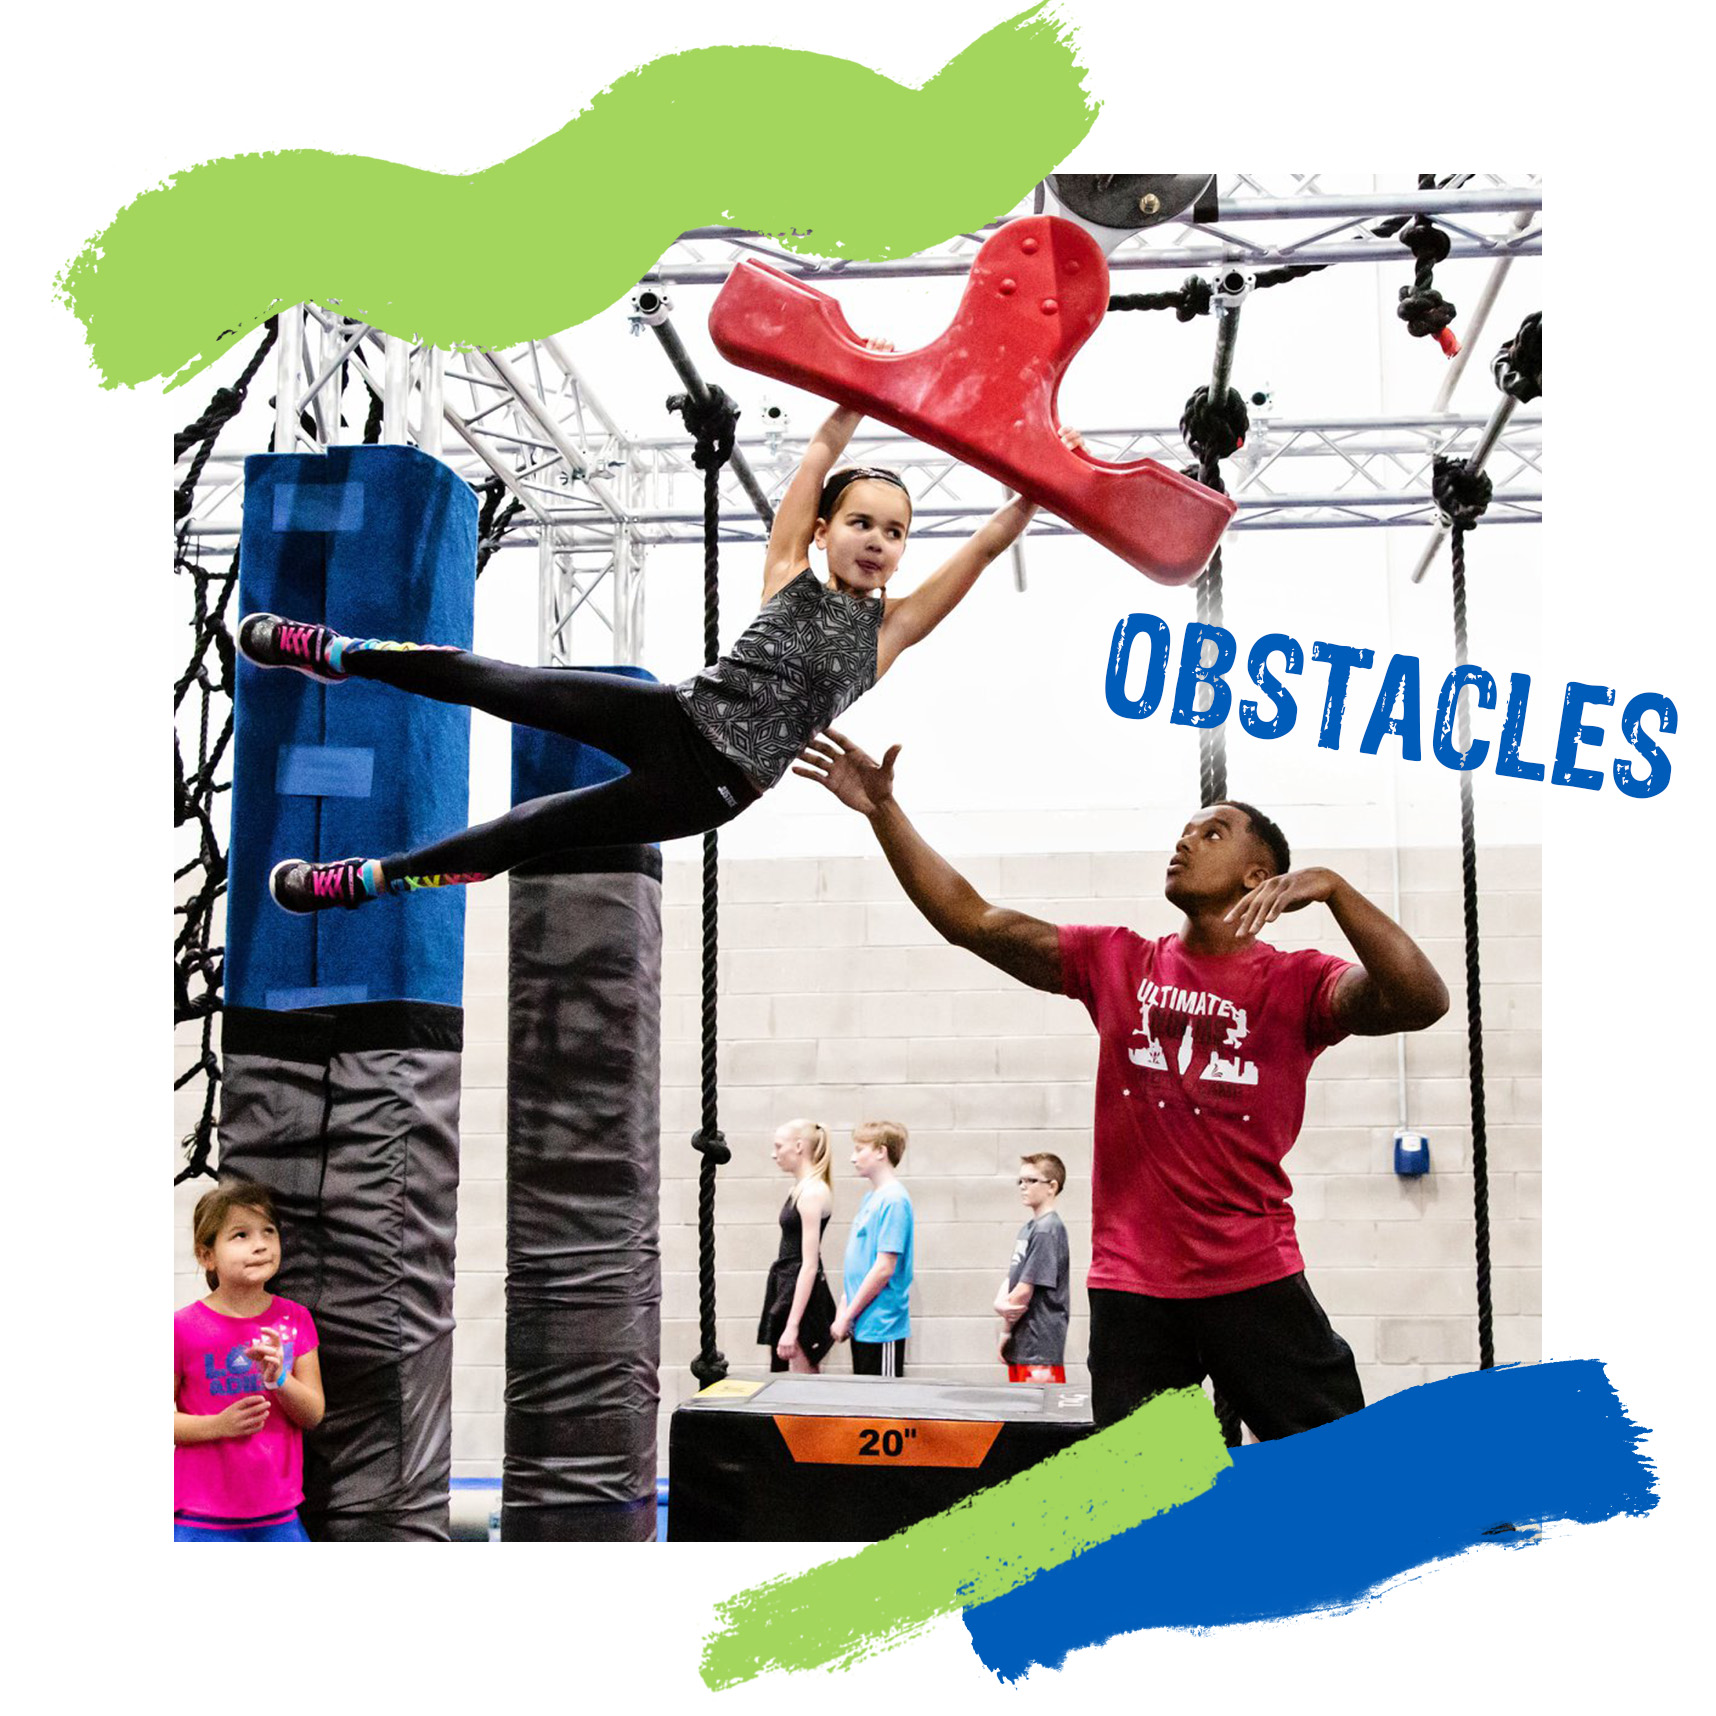 Ultimate Ninjas St Louis_Obstacles.jpg